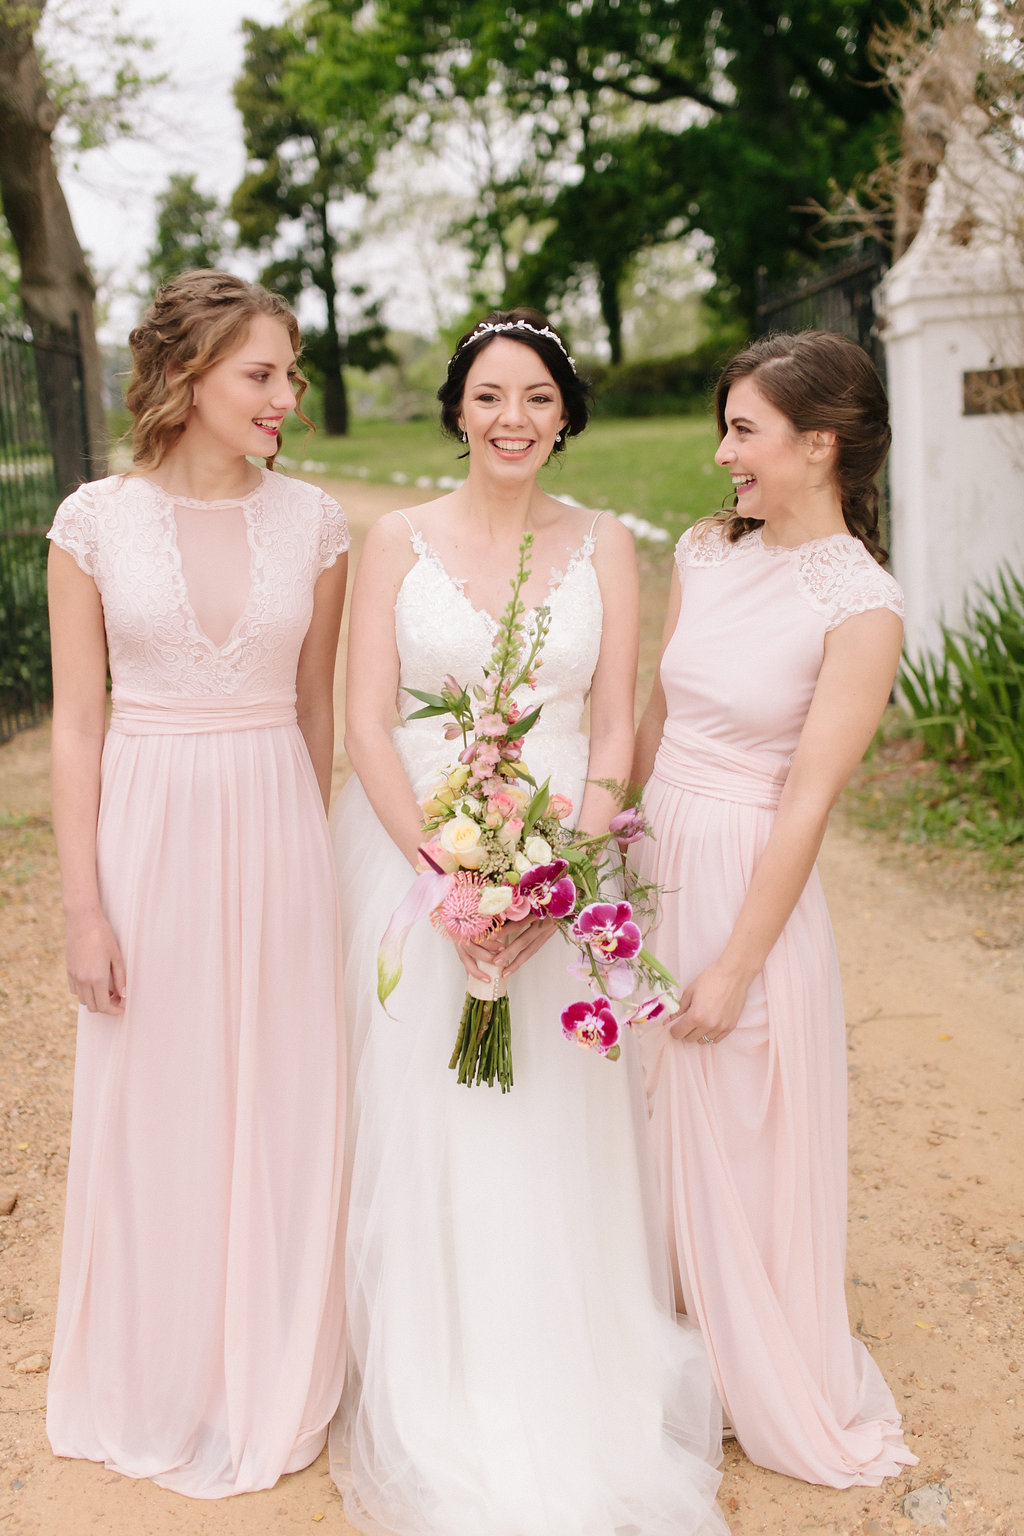 Blush Bridesmaid Dresses by Jacoba Clothing | Image: Nelani Van Zyl